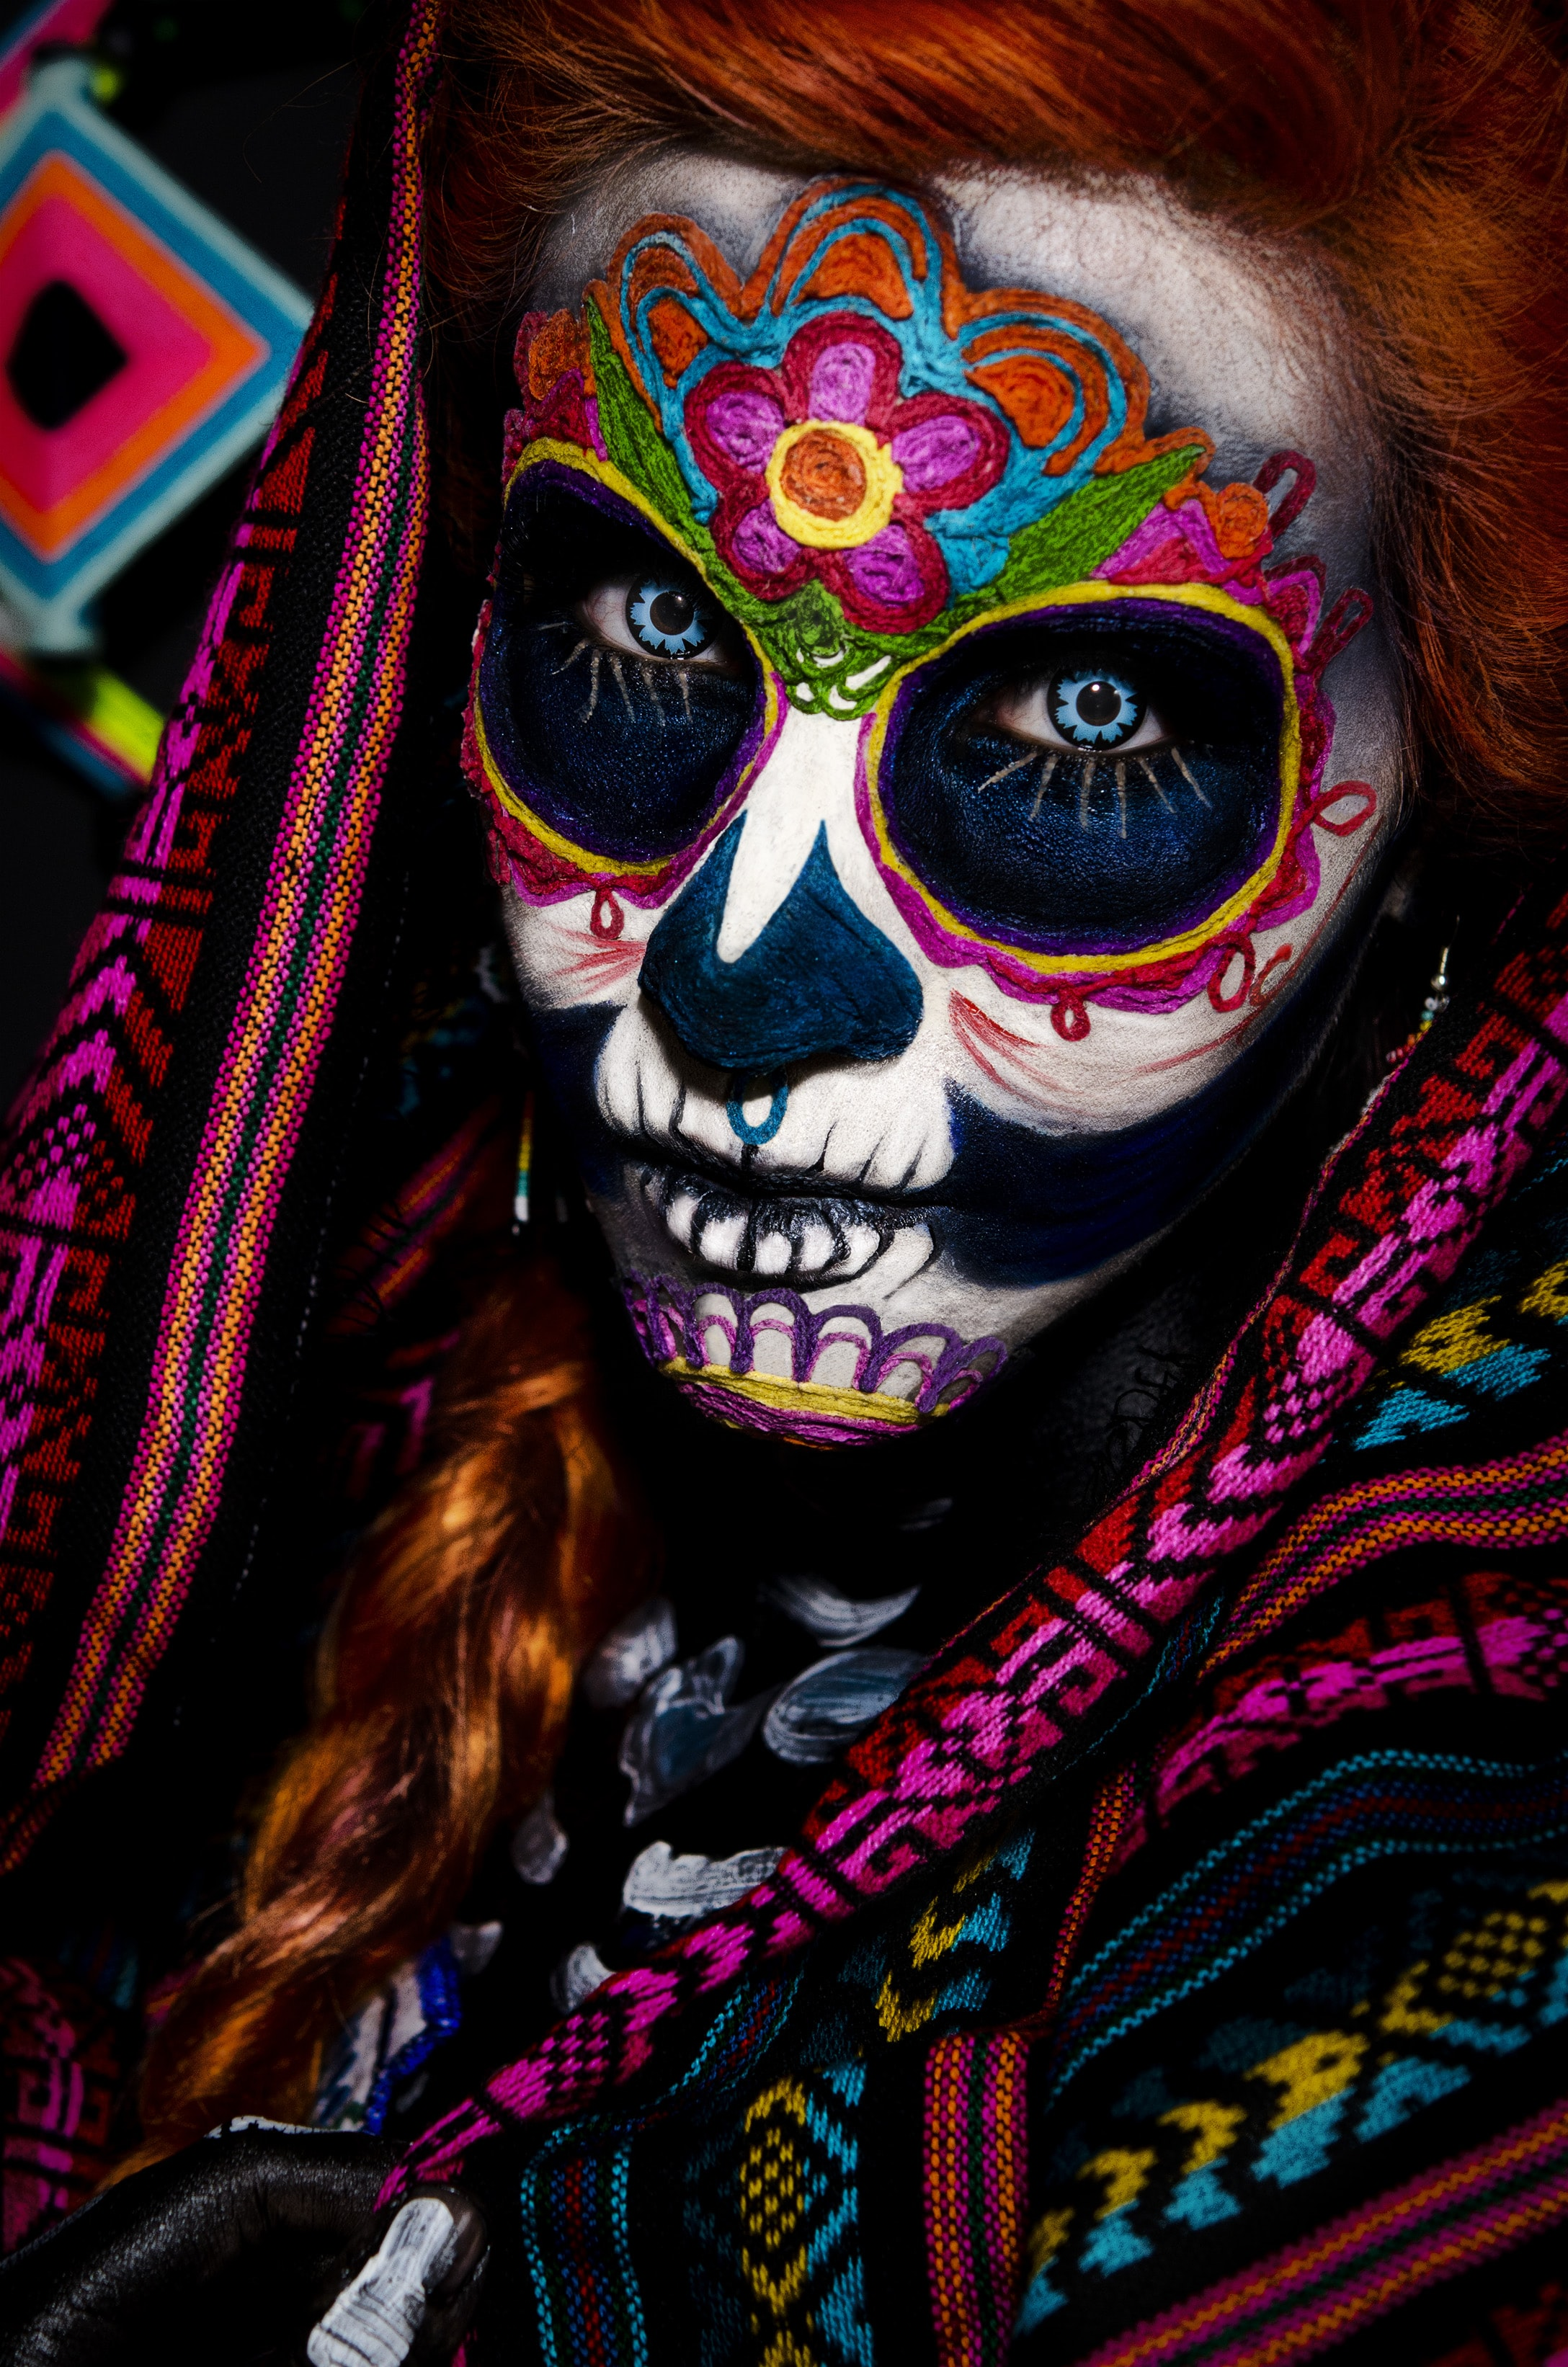 Muerte face painting